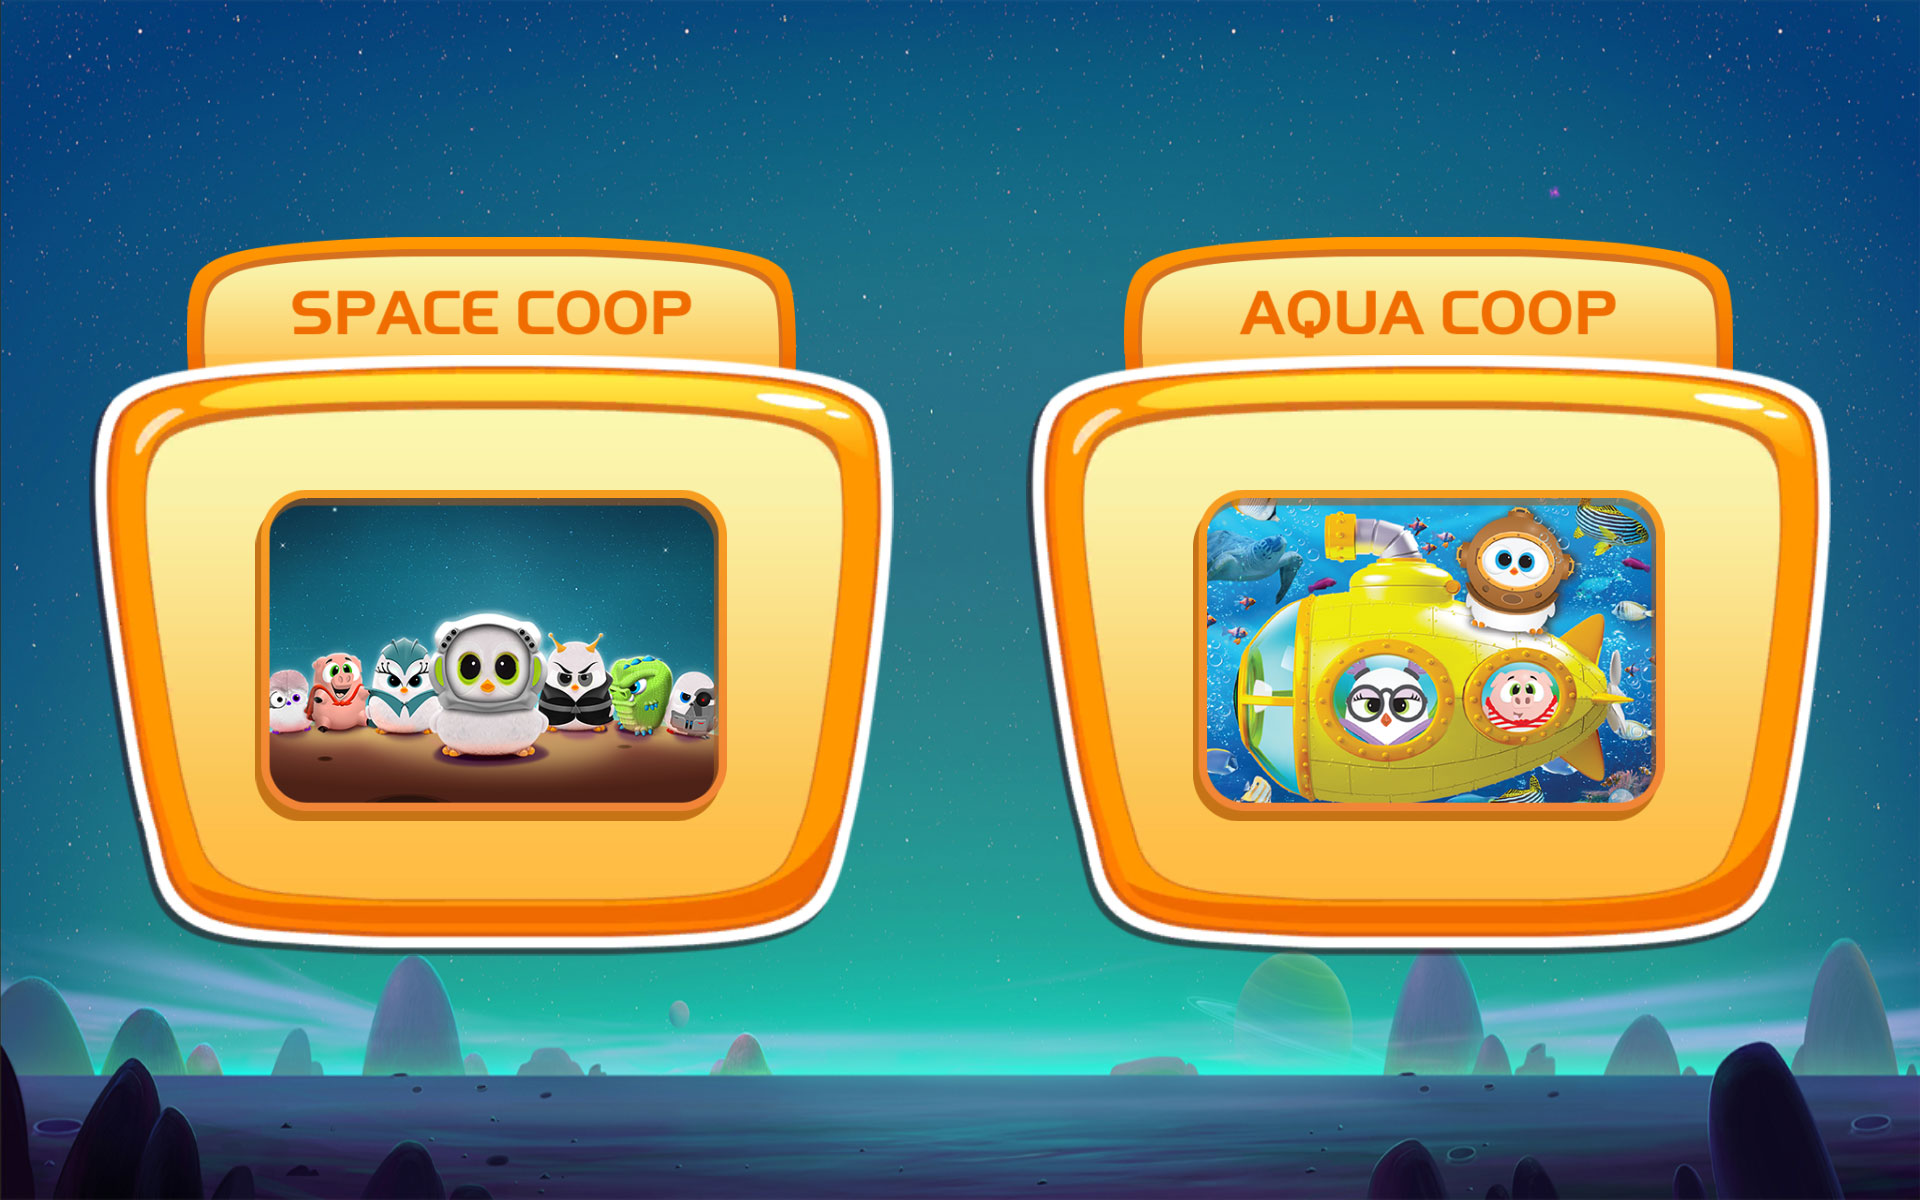 Choose between space and aqua coop game modes